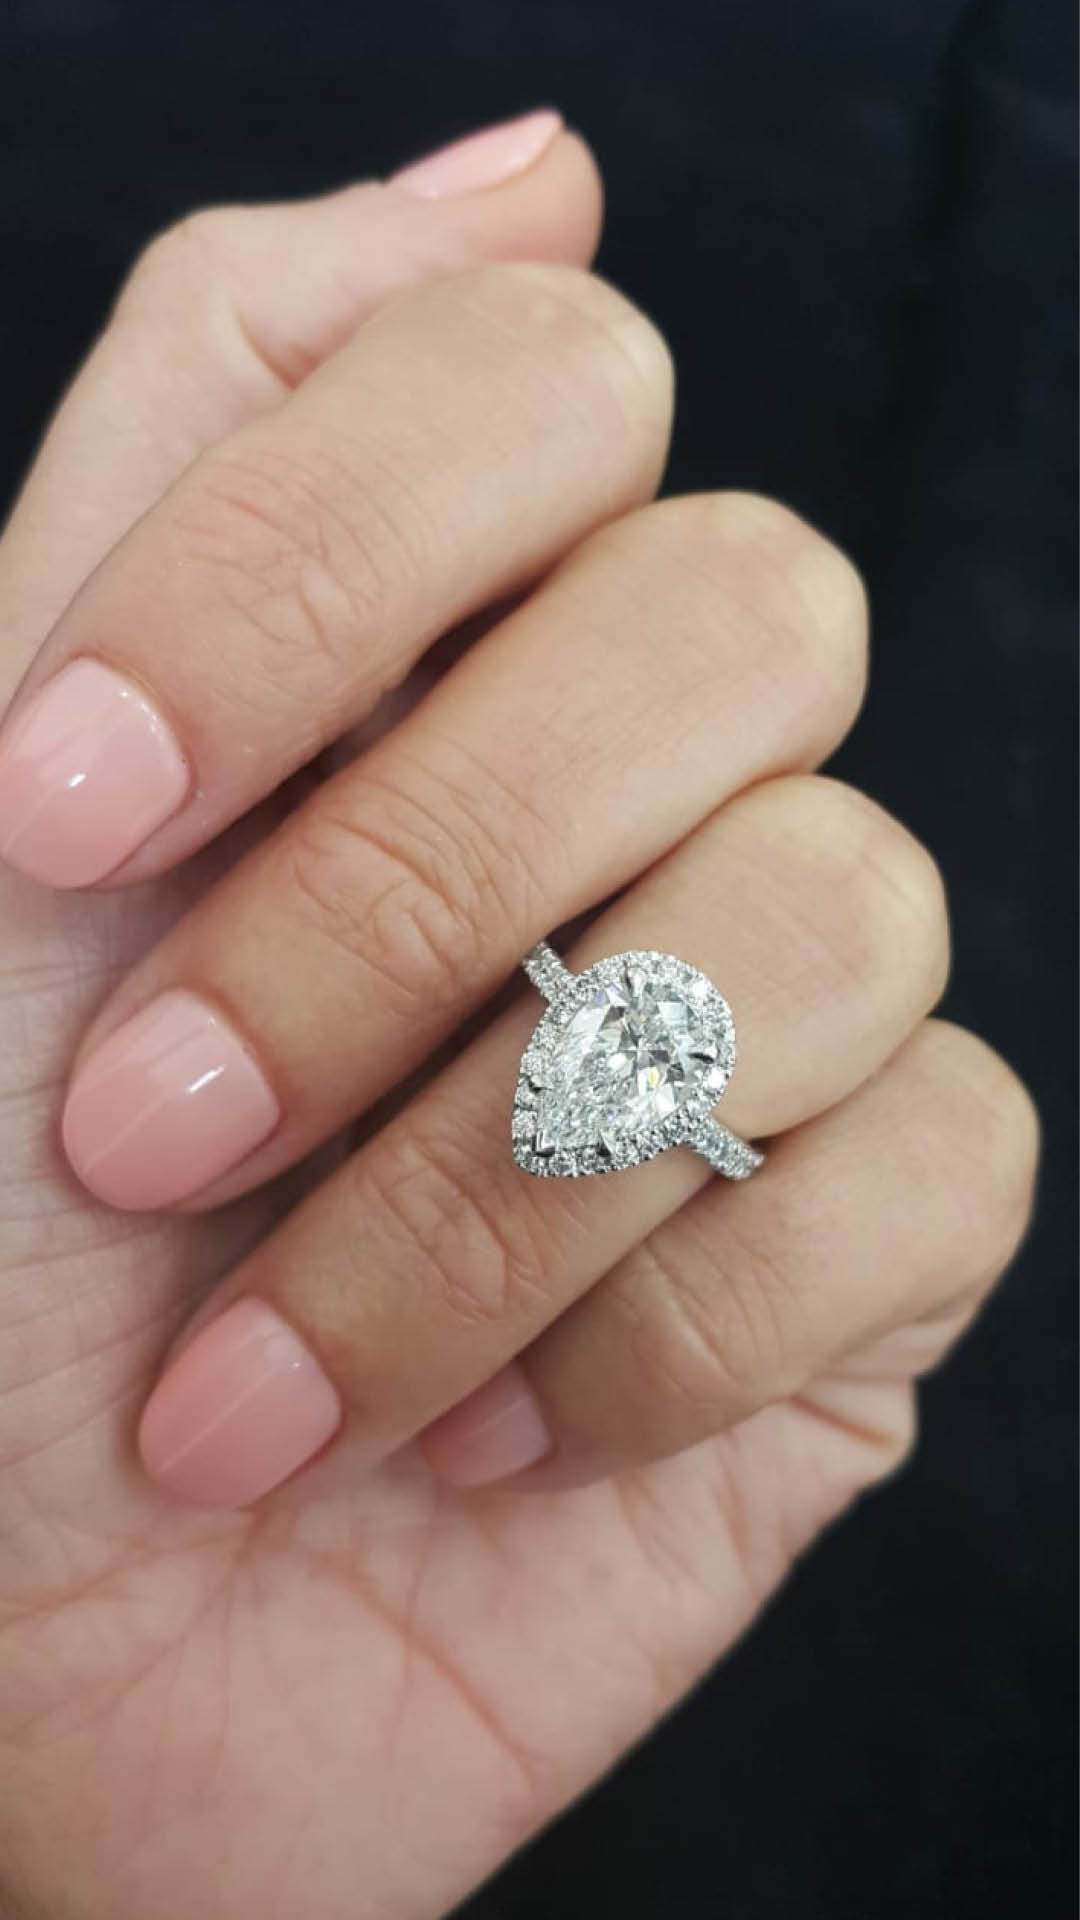 Fergus James Pear Diamond Engagement Ring Dubai